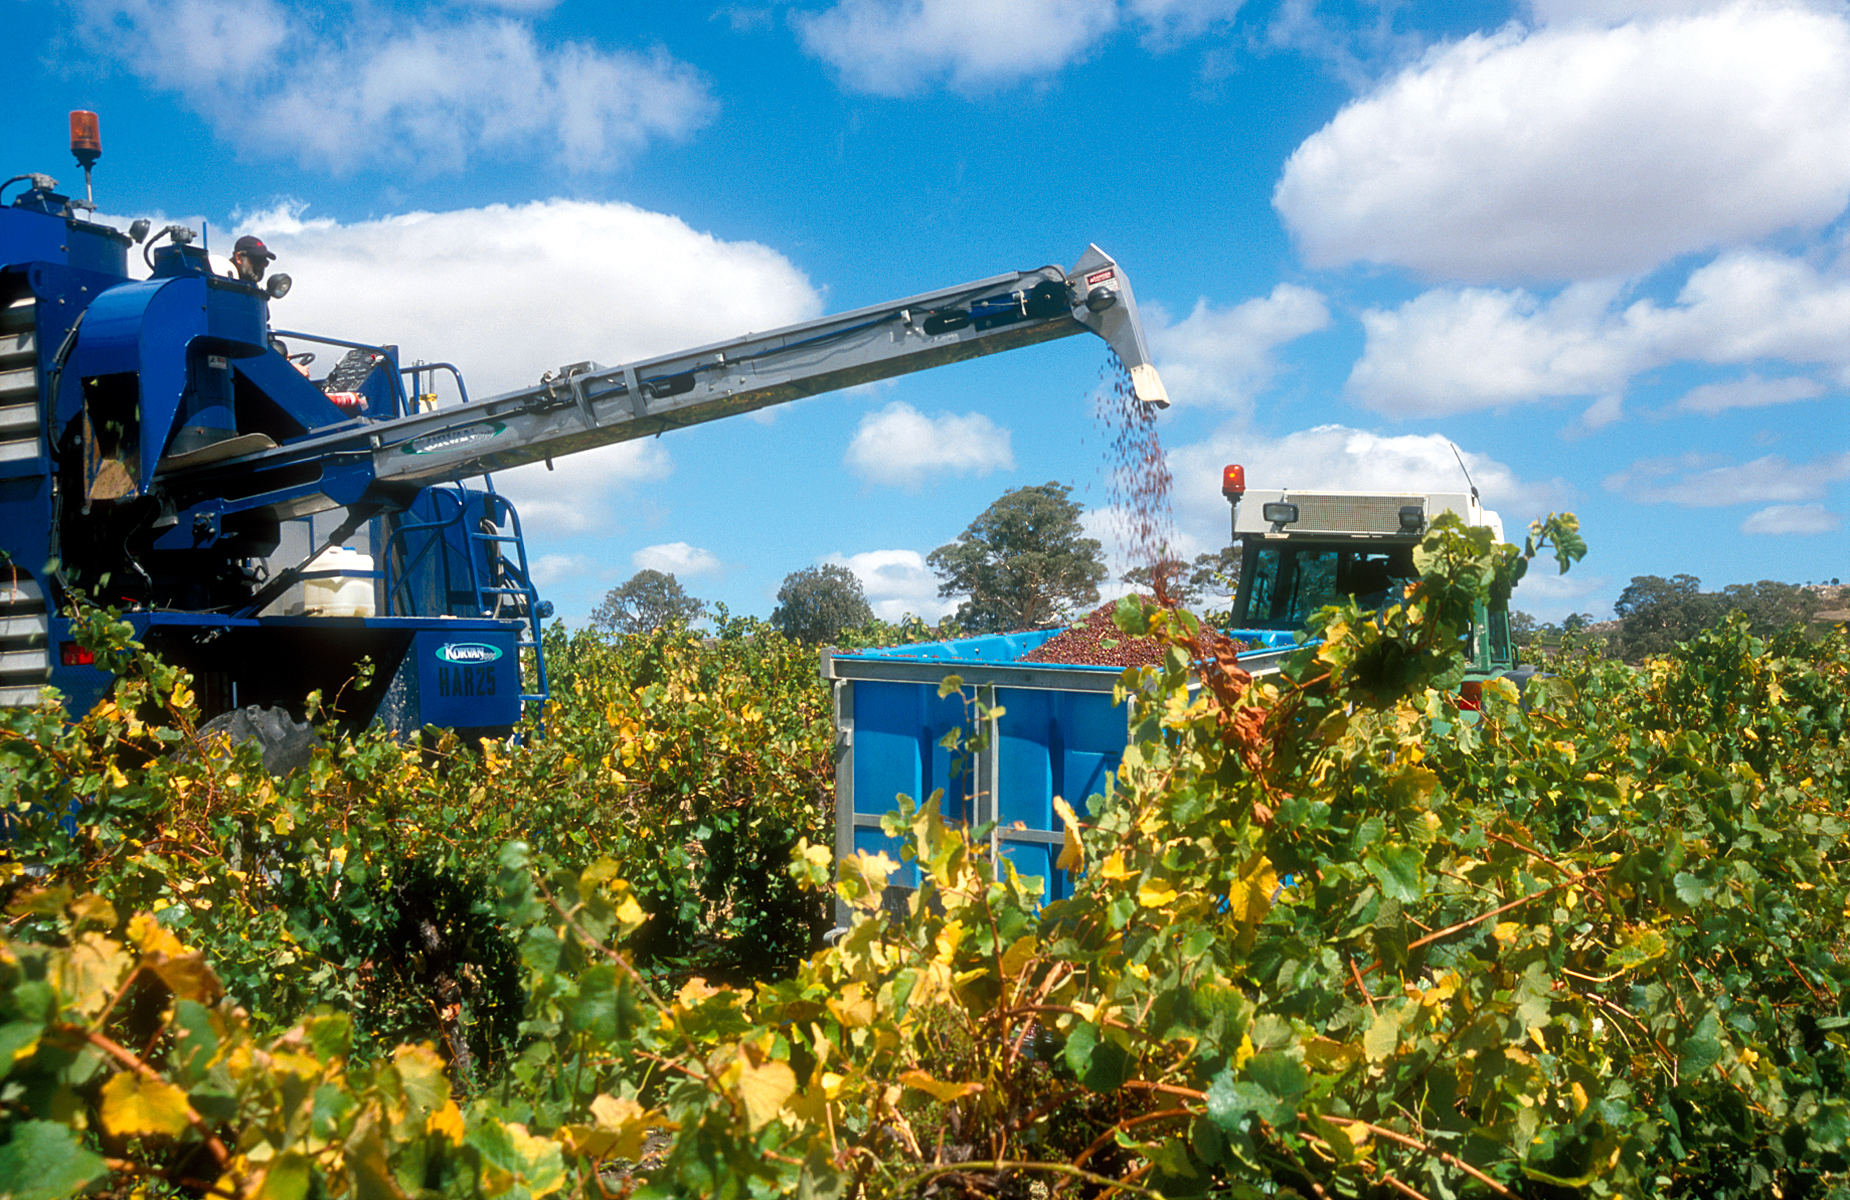 CSIRO_ScienceImage_4712_Grape_harvesting_machinery_in_operation_at_a_vineyard_in_the_Eden_Valley_SA_2004